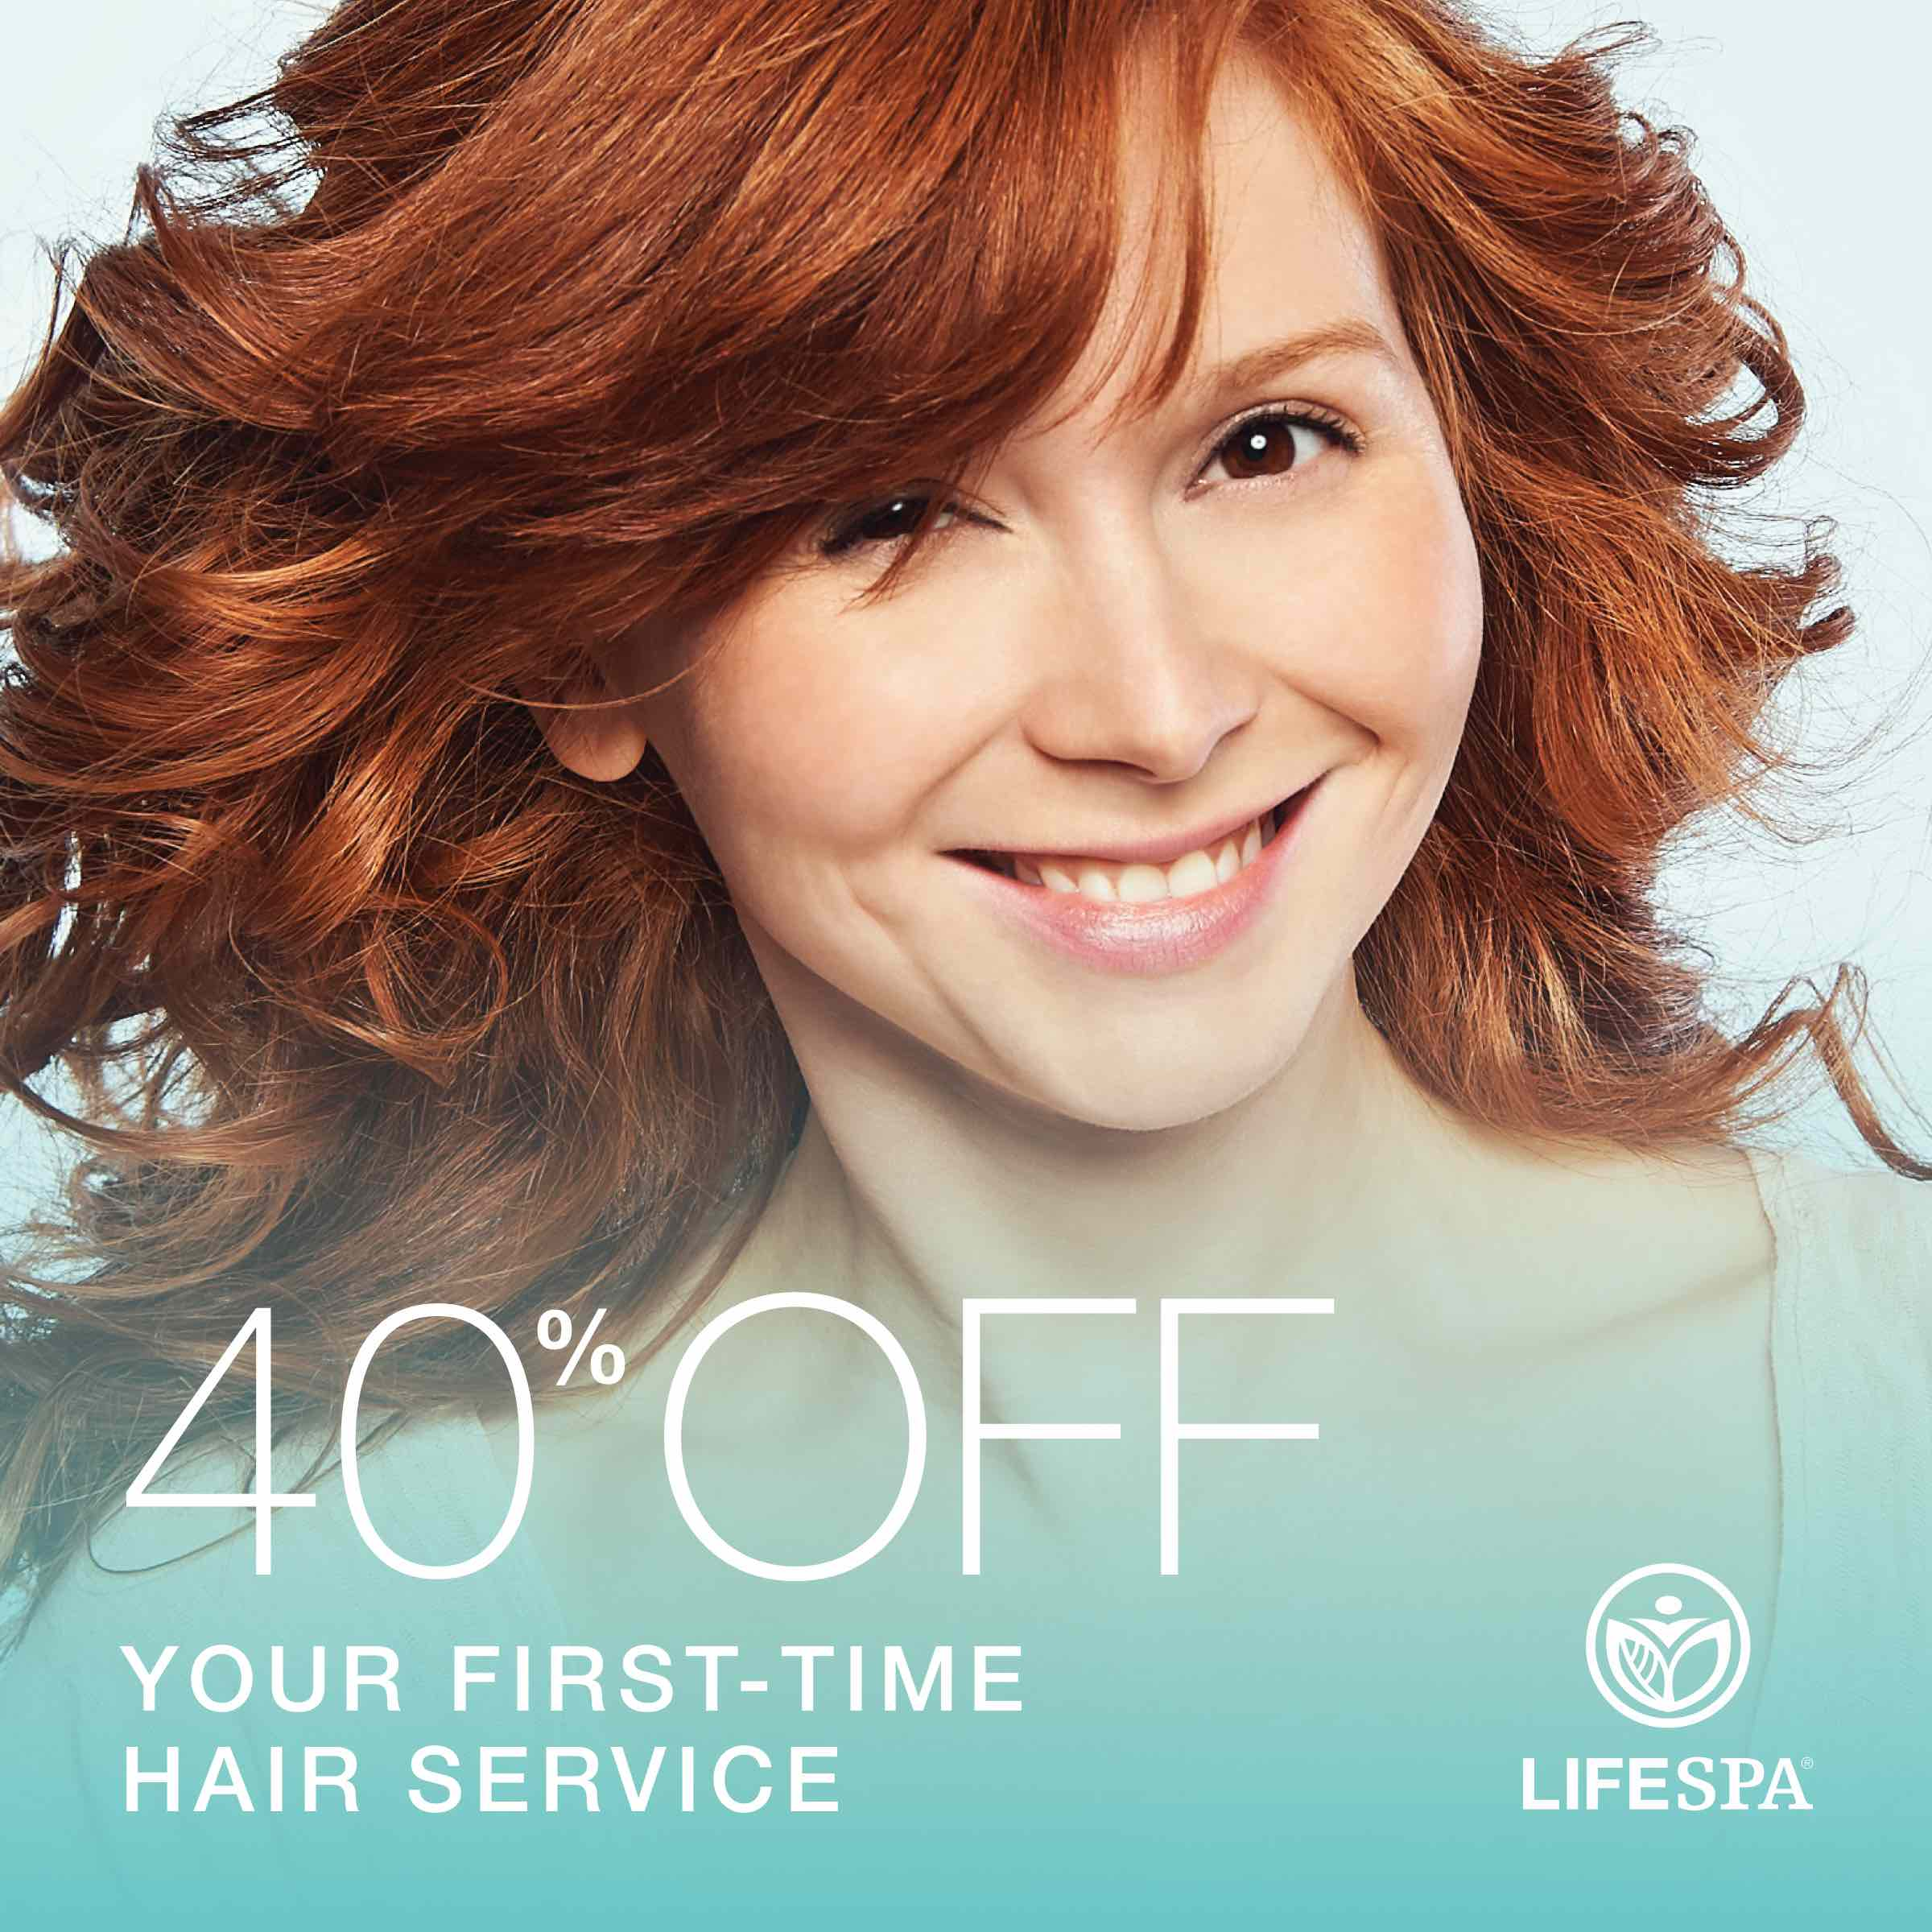 40% off your first-time hair service